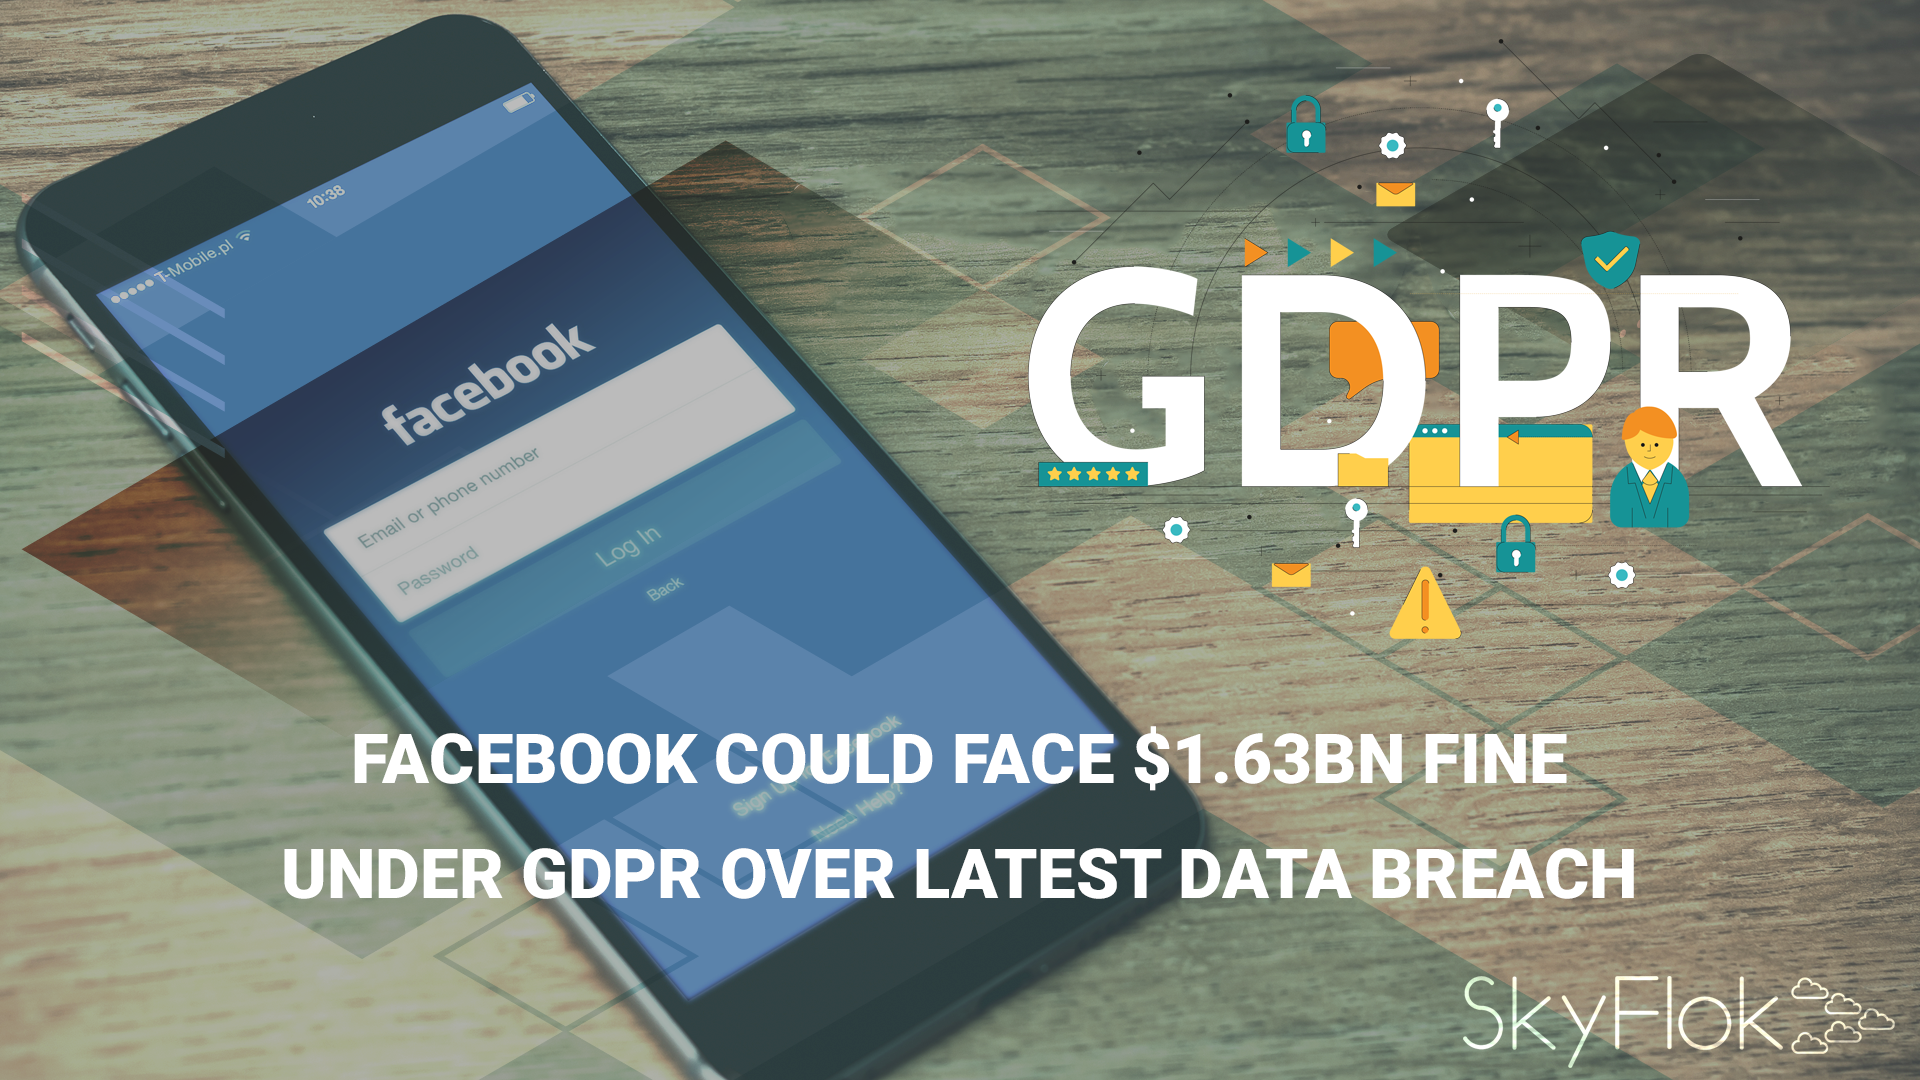 Facebook could face $1.63bn fine under GDPR over latest data breach